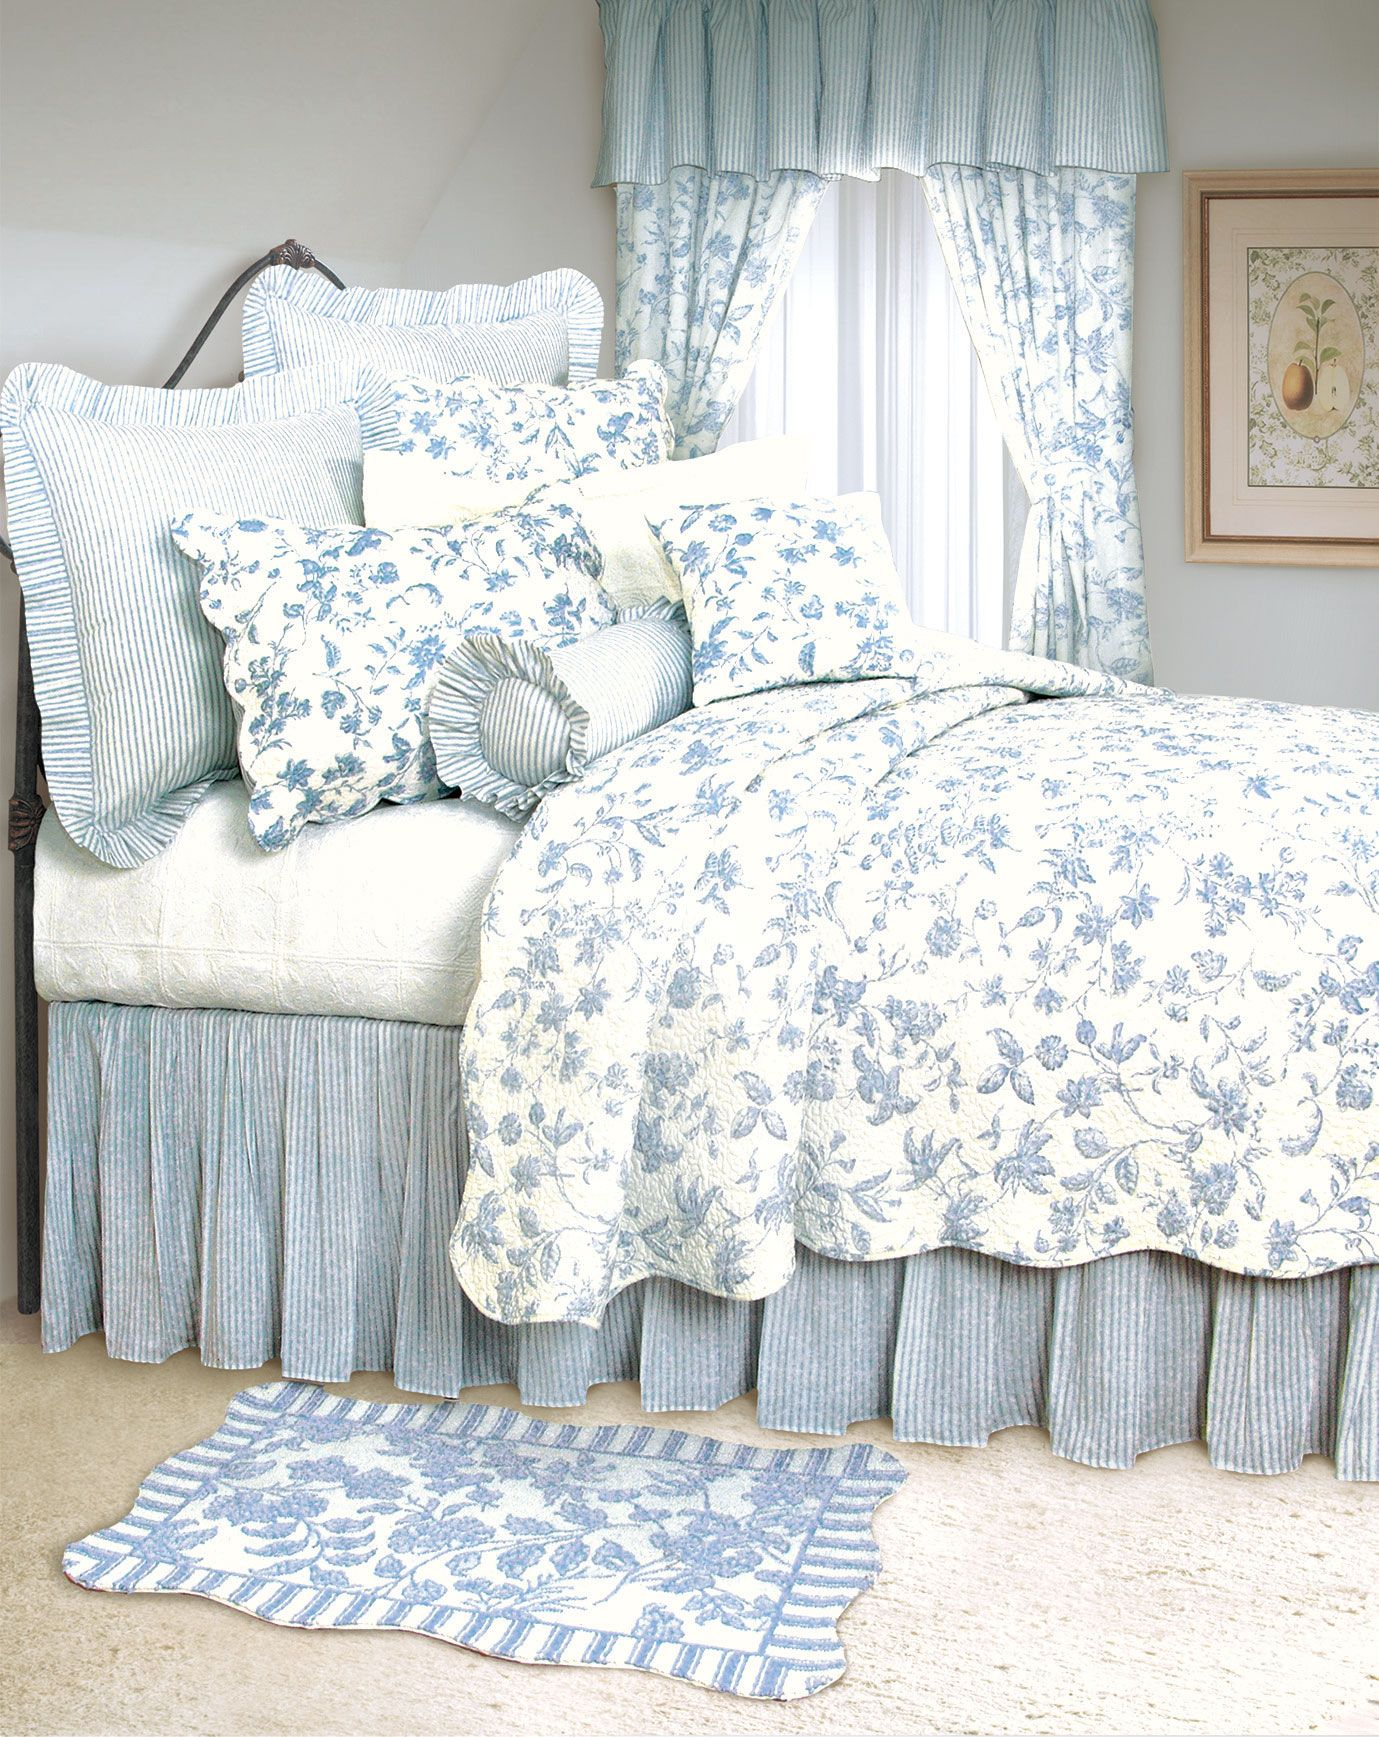 Brighton Blue Toile Bedding By C And F Aj Moss Blue Rooms Blue White Decor Country Bedding Sets